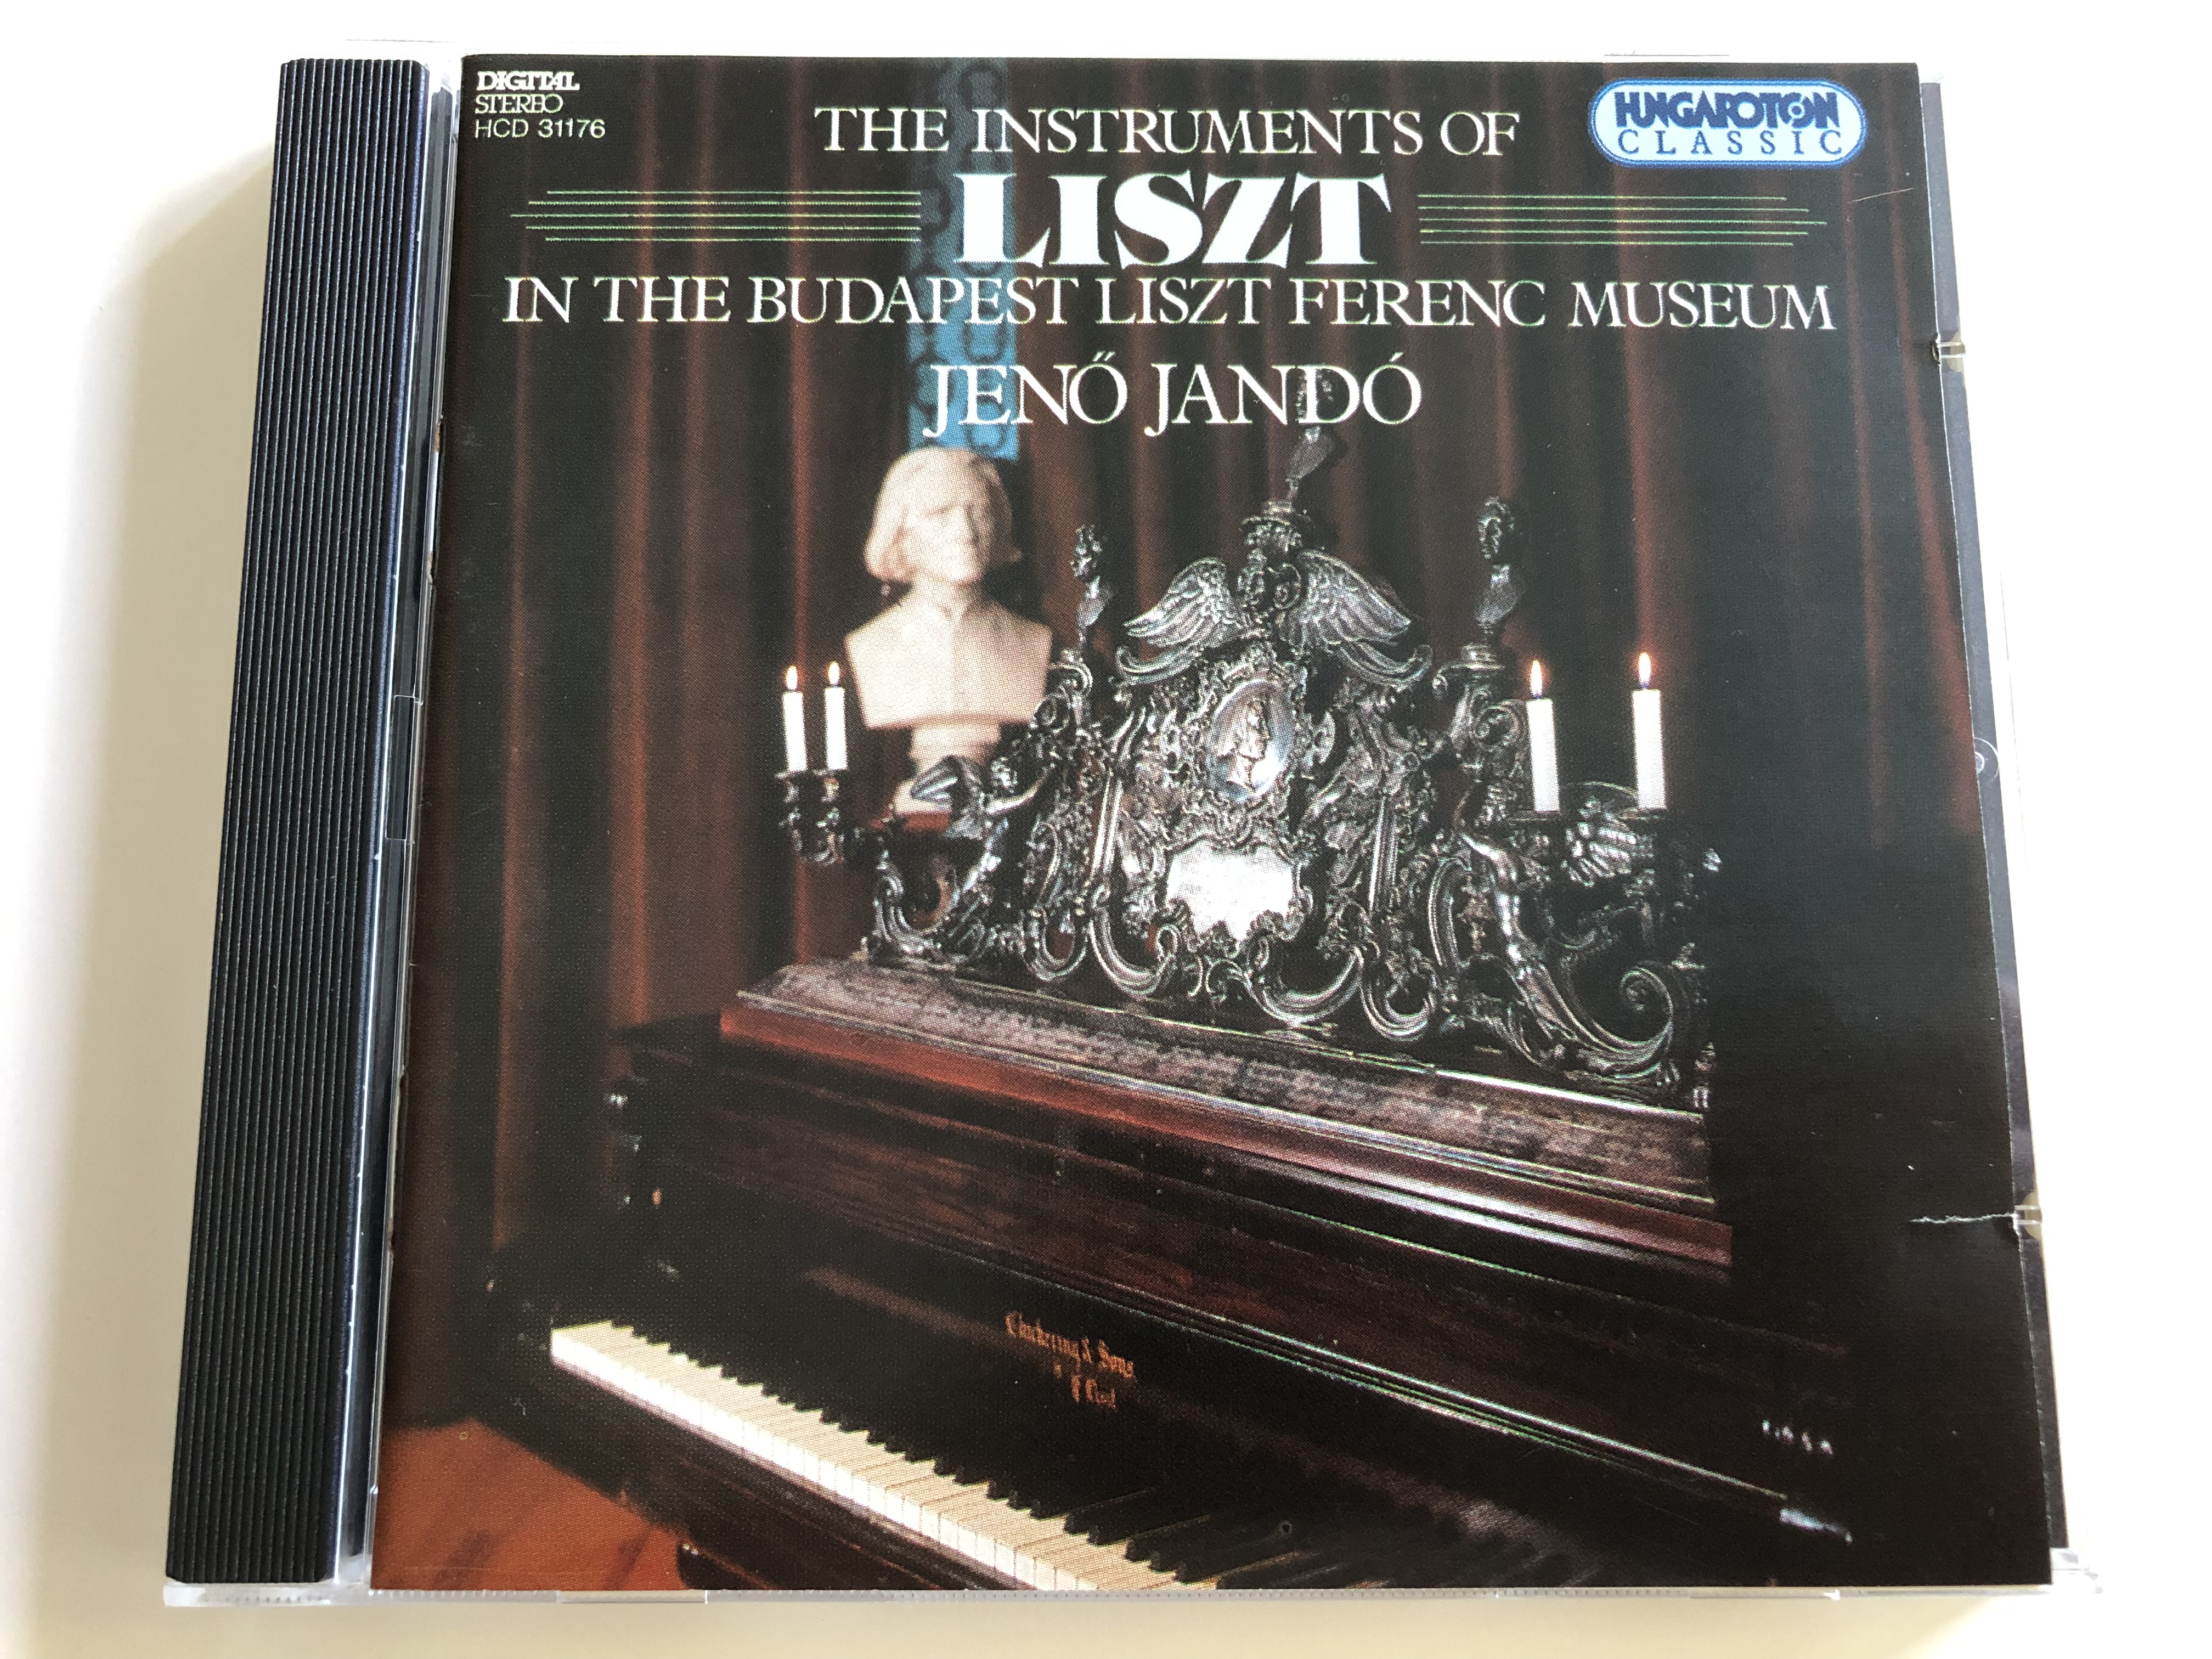 the-instruments-of-liszt-in-the-budapest-liszt-ferenc-museum-jen-jand-piano-hungaroton-classic-hcd-31176-audio-cd-1994-1-.jpg